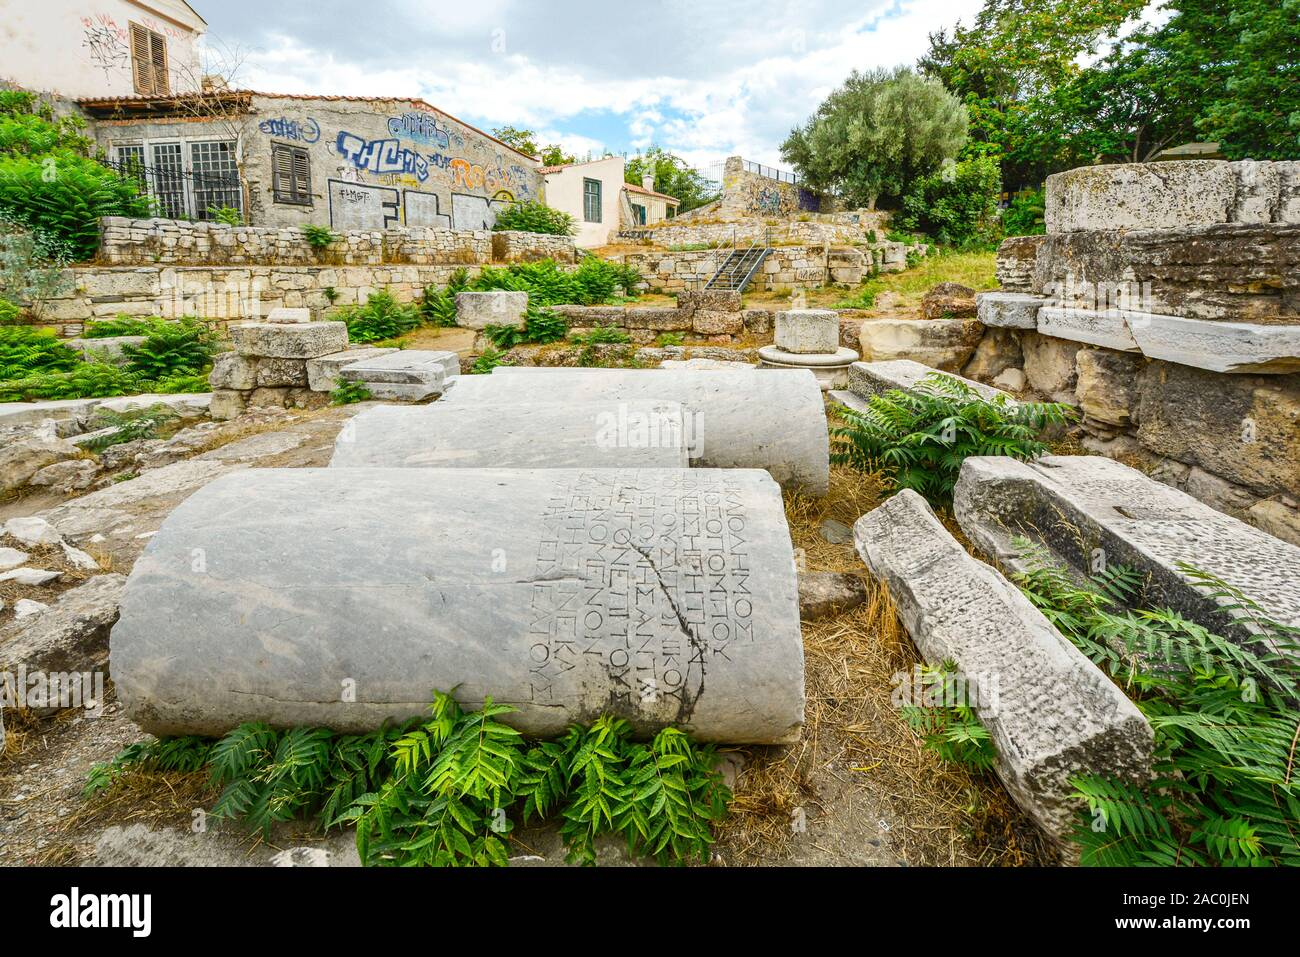 Ancient columns with inscriptions lay beside a new building covered with Graffiti in Athens, Greece. Stock Photo